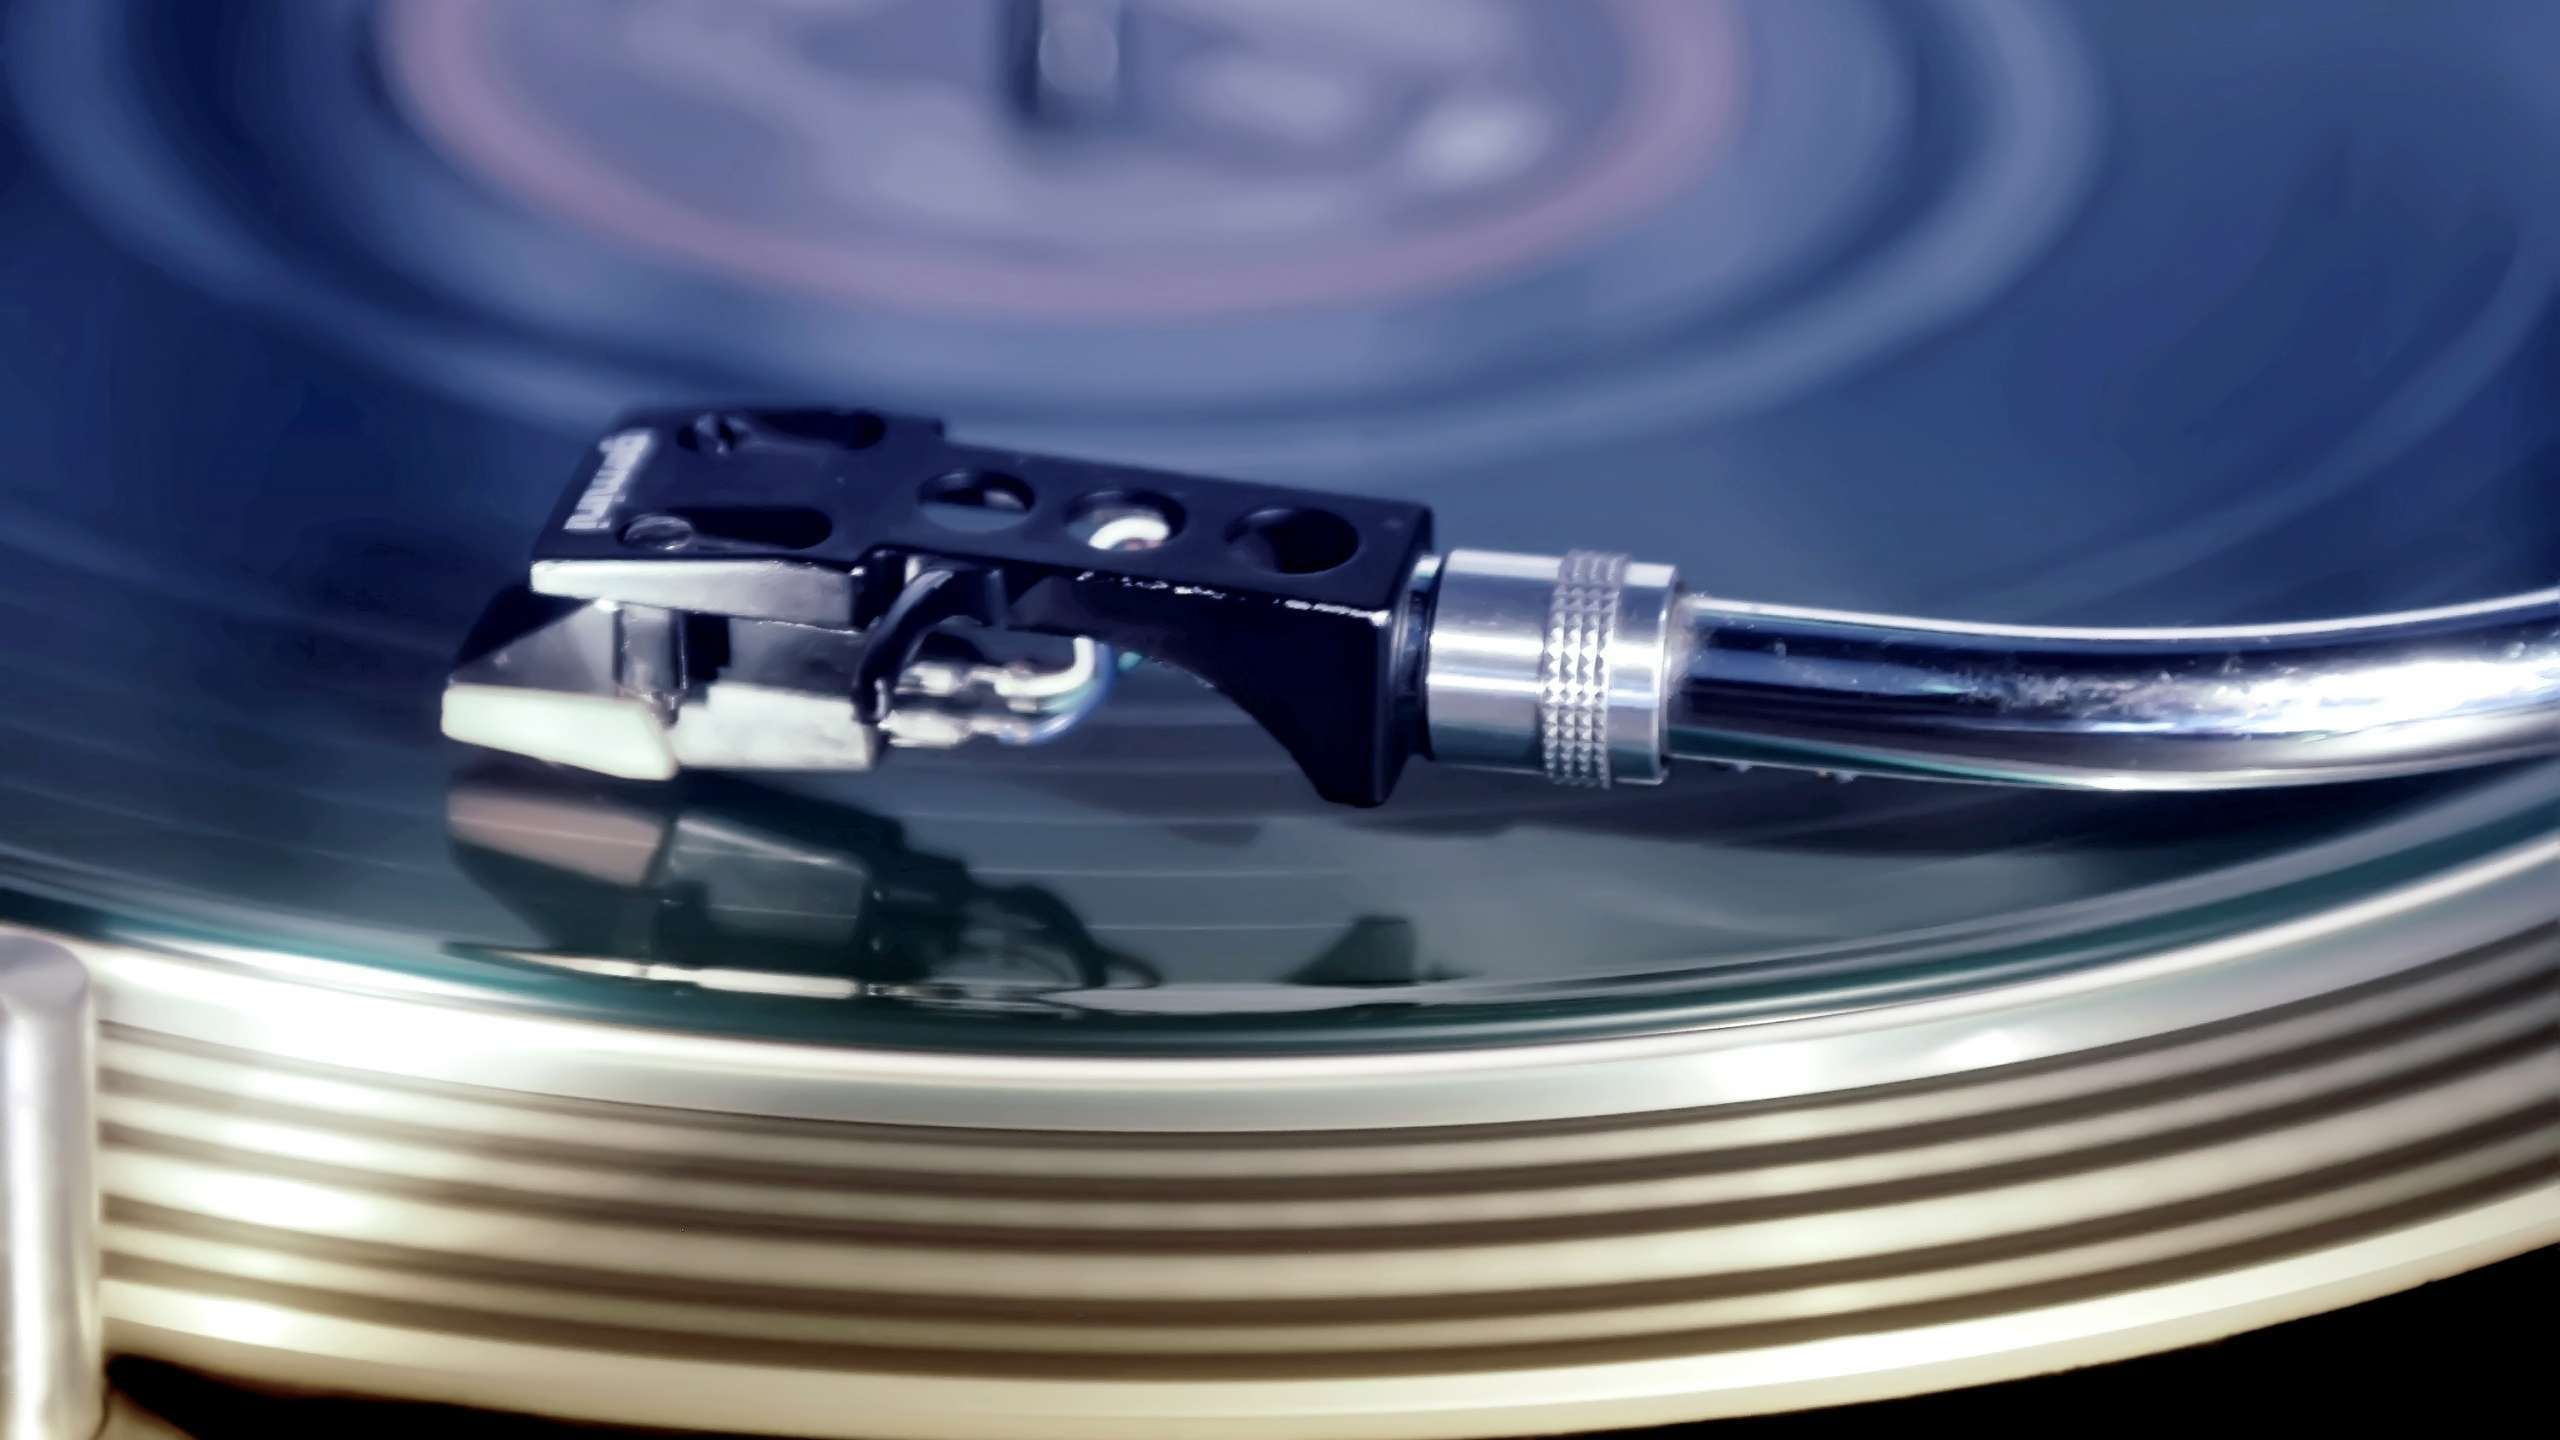 Table Record Player wallpaper for your iMac HD Wallpapers Source 2560x1440